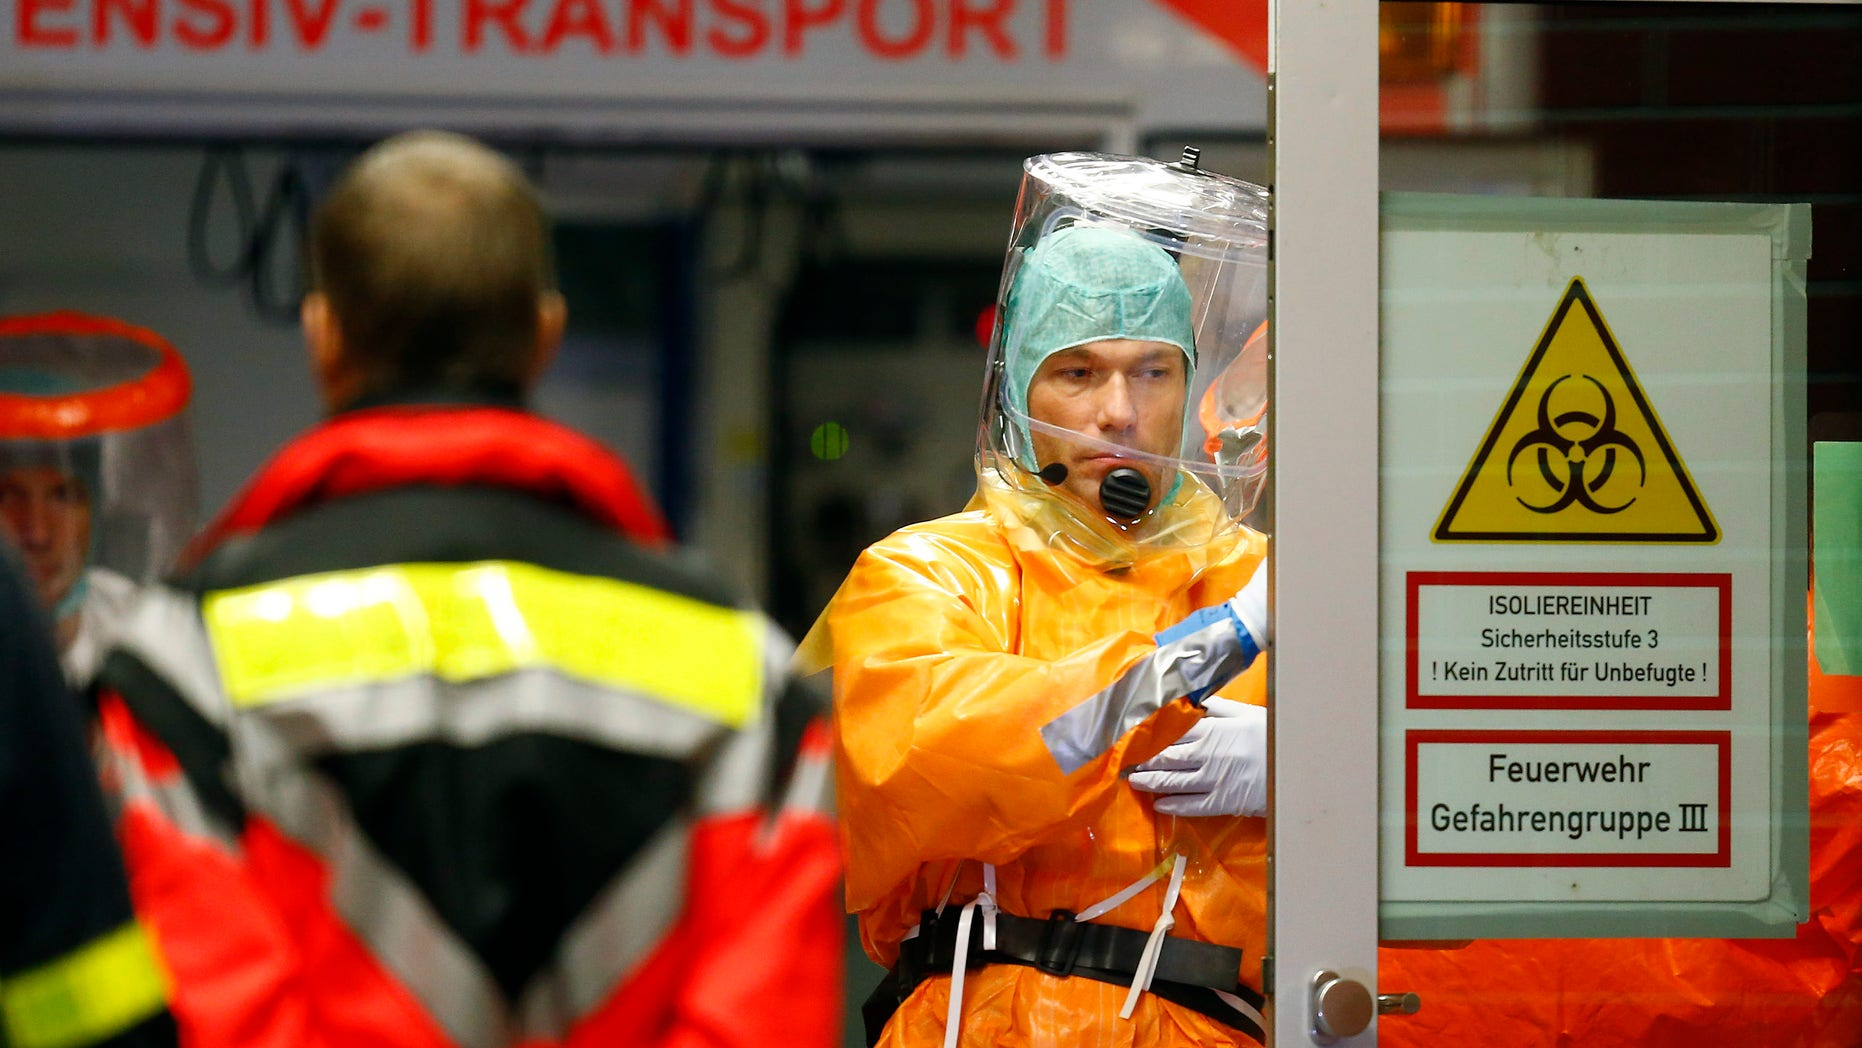 Medical staff members wearing sealed protective suits work during the arrival of an Ebola patient at the Universitaetsklinikum Frankfurt (University Hospital Frankfurt) in Frankfurt, October 3, 2014. REUTERS/Ralph Orlowski